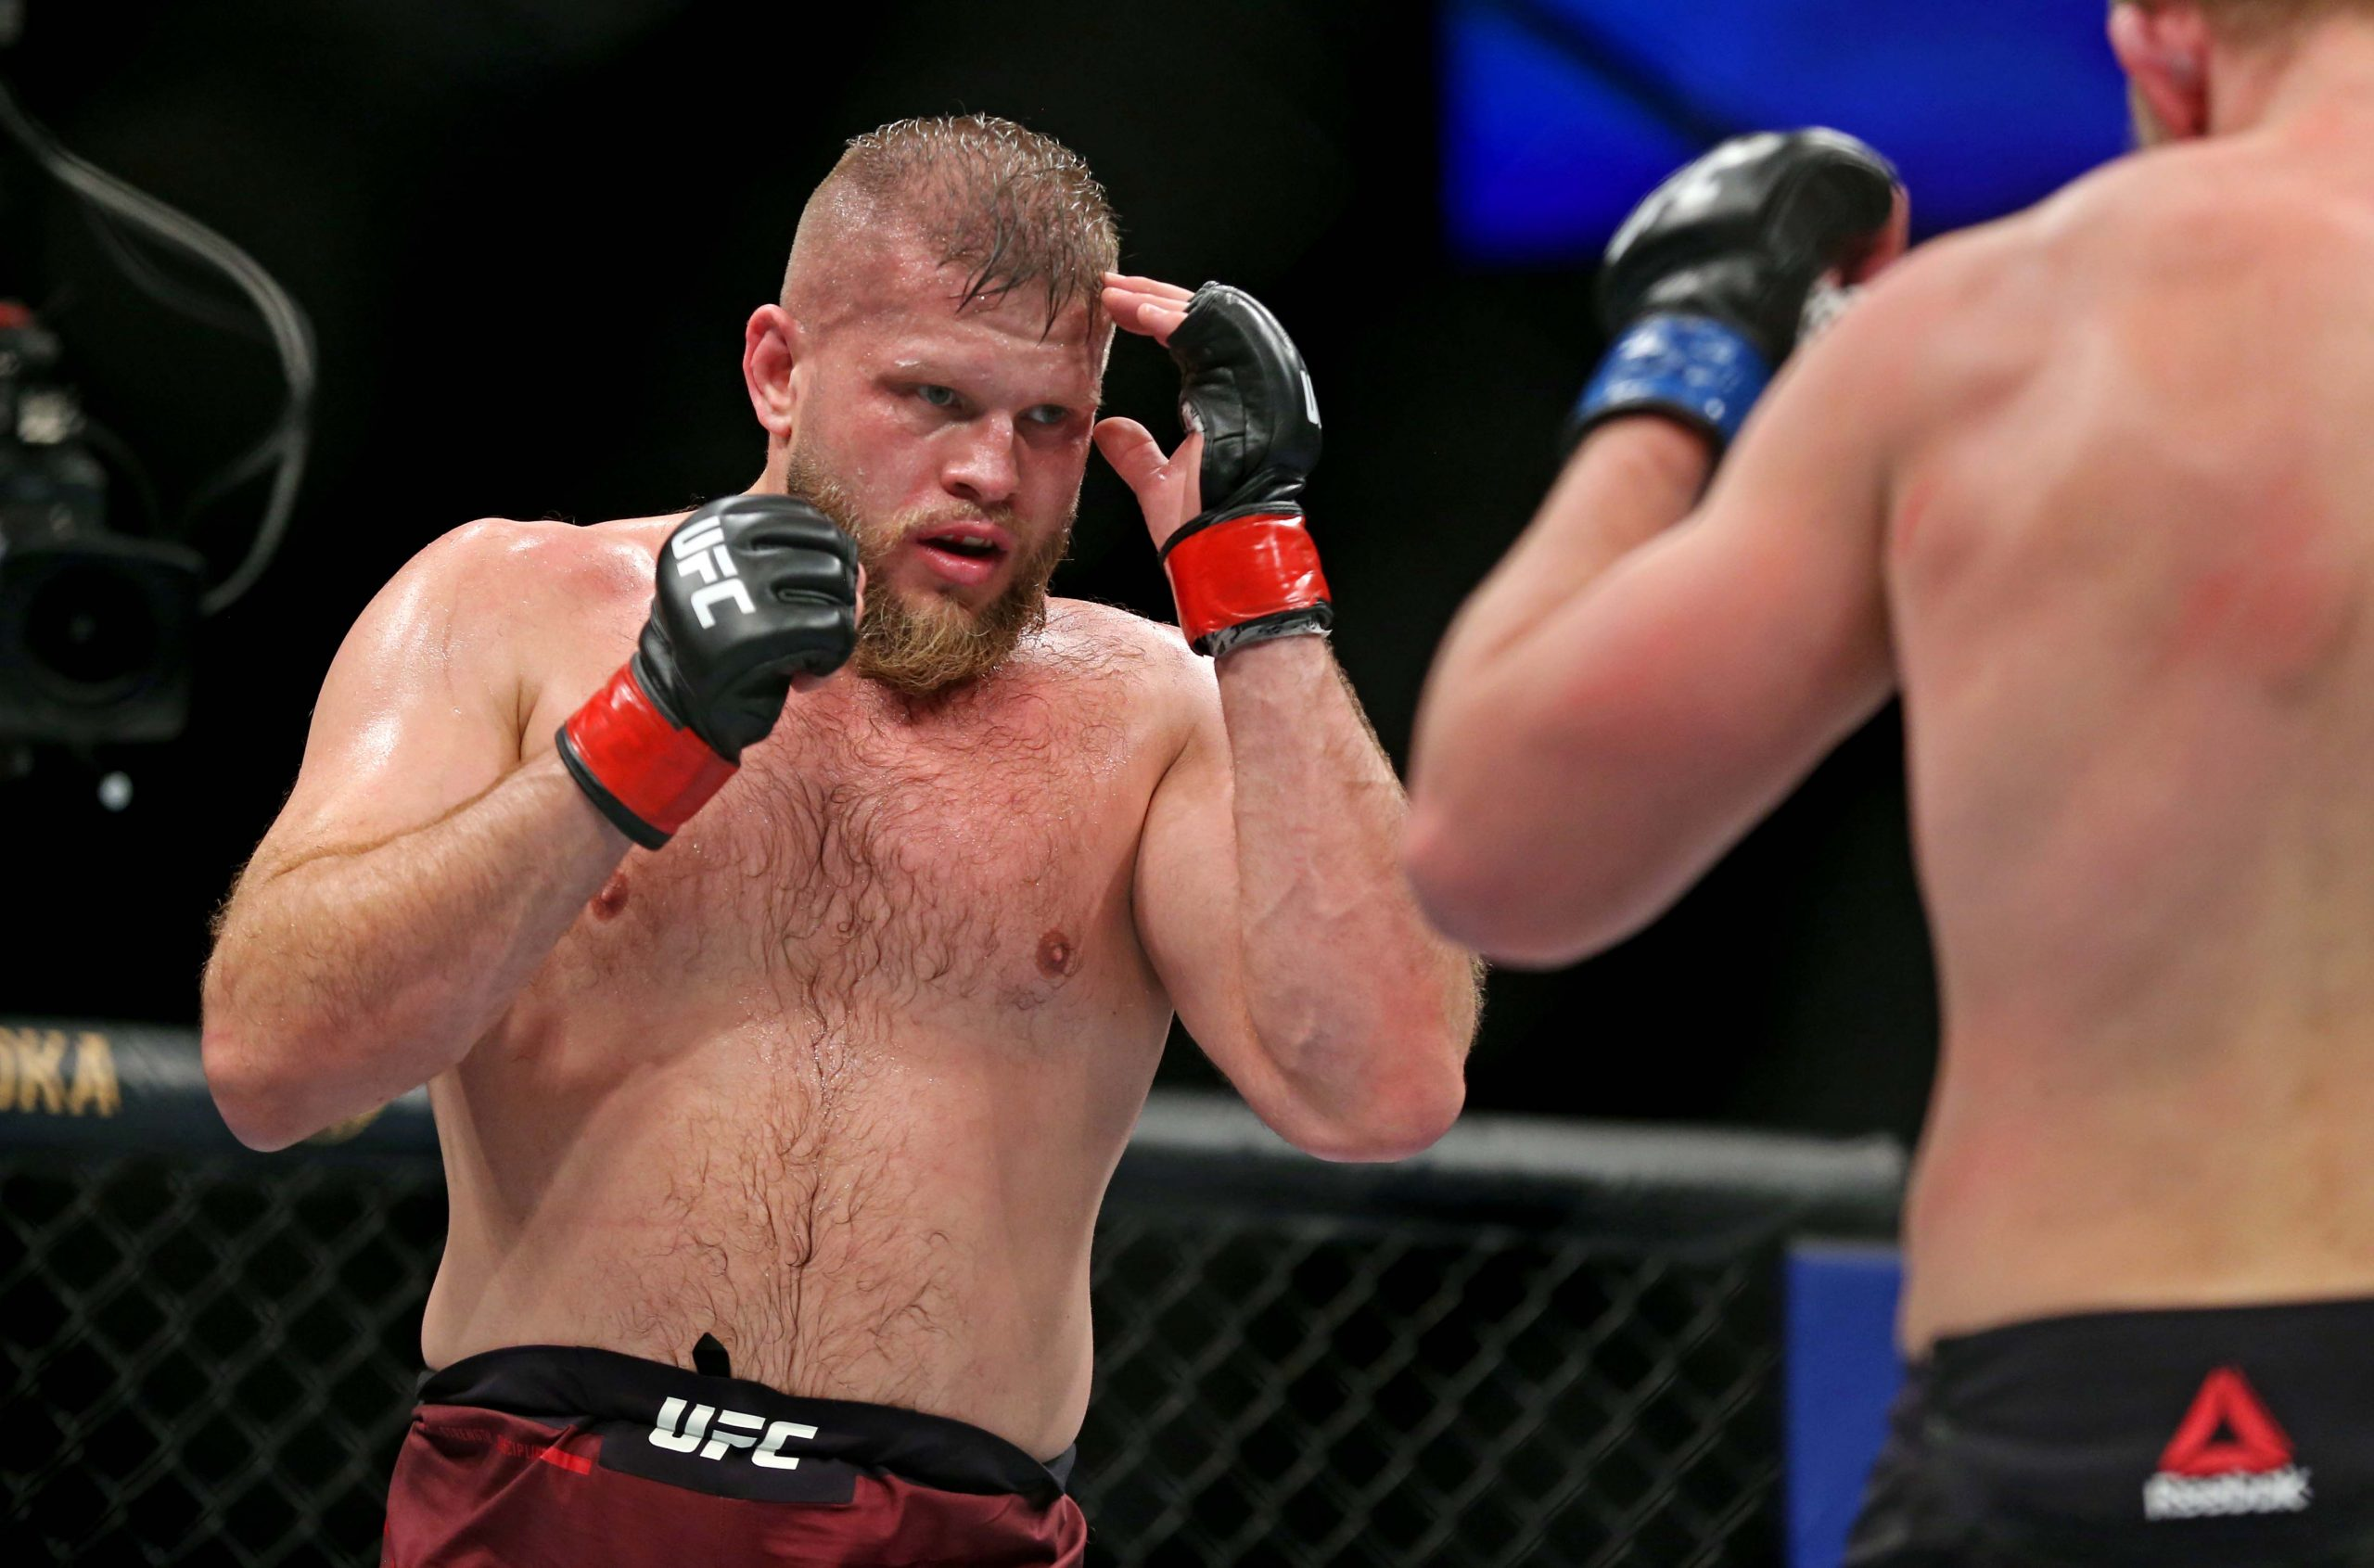 Feb 29, 2020; Norfolk, Virginia, USA; Marcin Tybura (red gloves) fights Serghei Spivac (blue gloves) during UFC Fight Night at Chartway Arena.